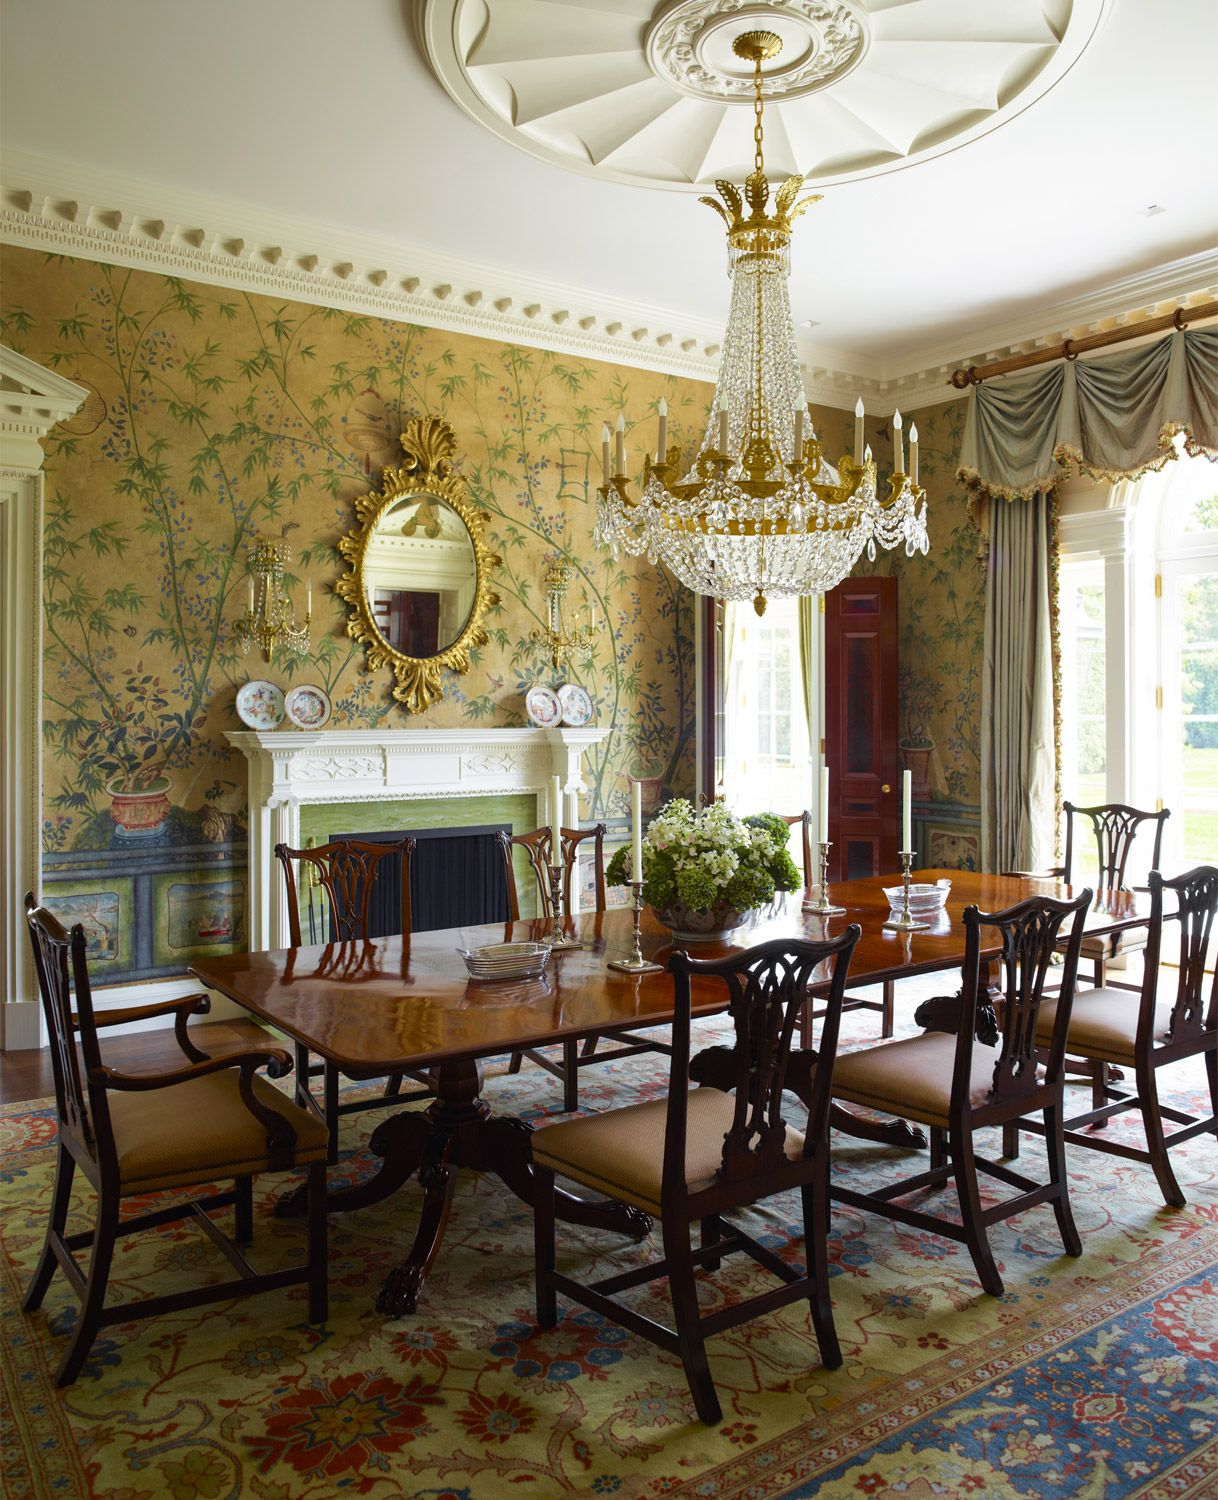 Victorian Dining Room Ideas: Traditional Dining Rooms, Victorian